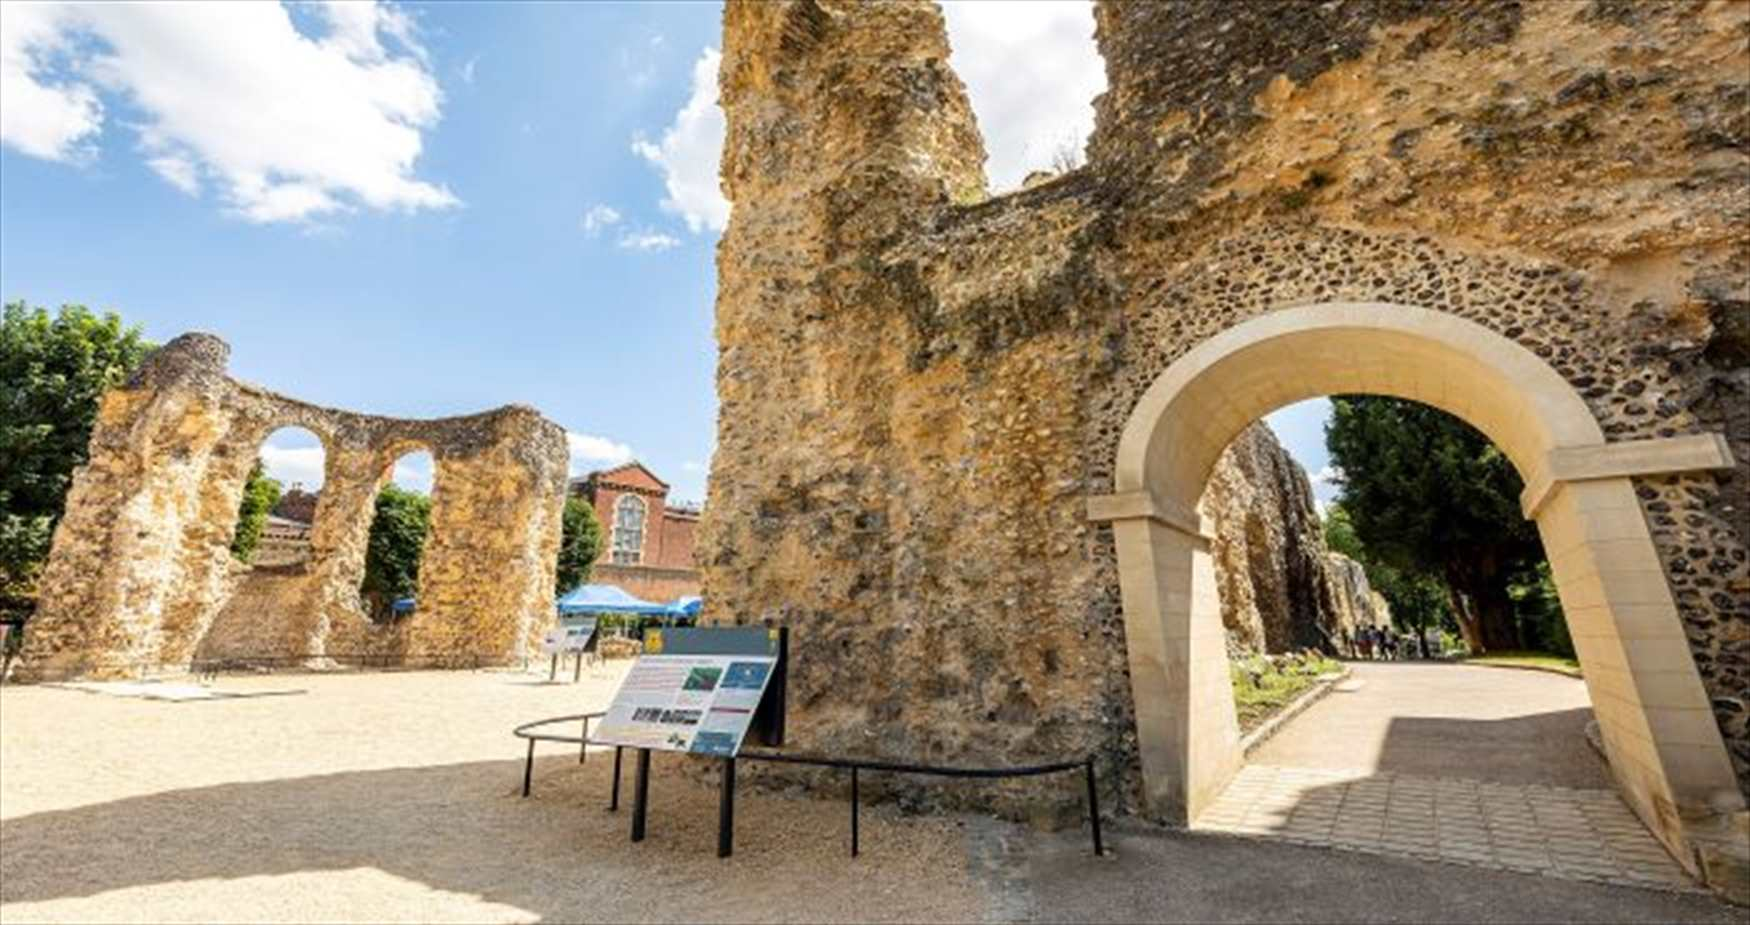 Explore the ruins of 800 year old Reading Abbey